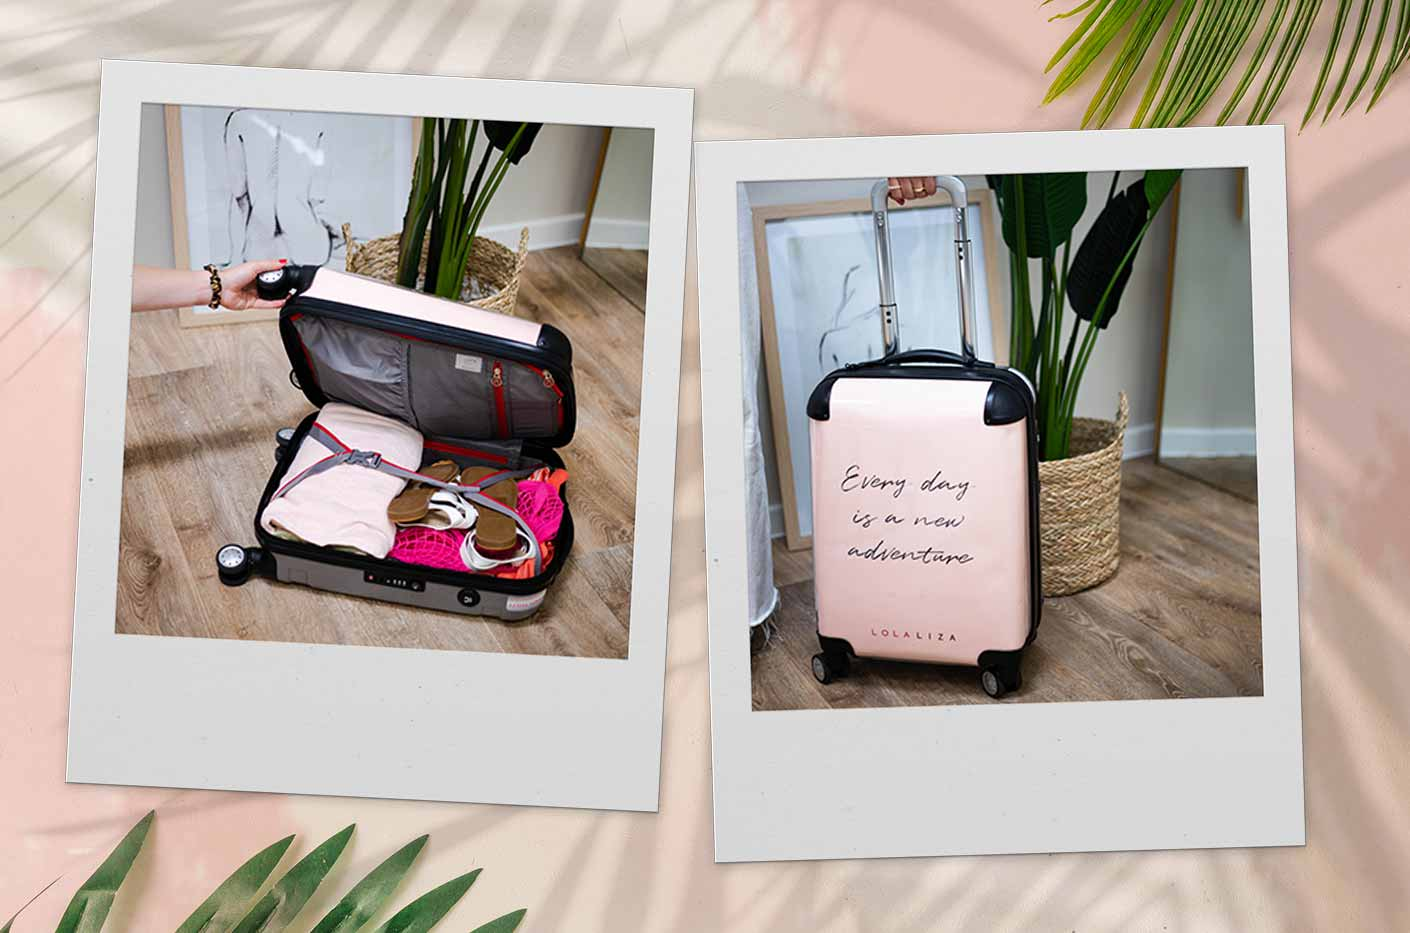 Suitcase is packed with LolaLiza items. Ready to go on vacation.